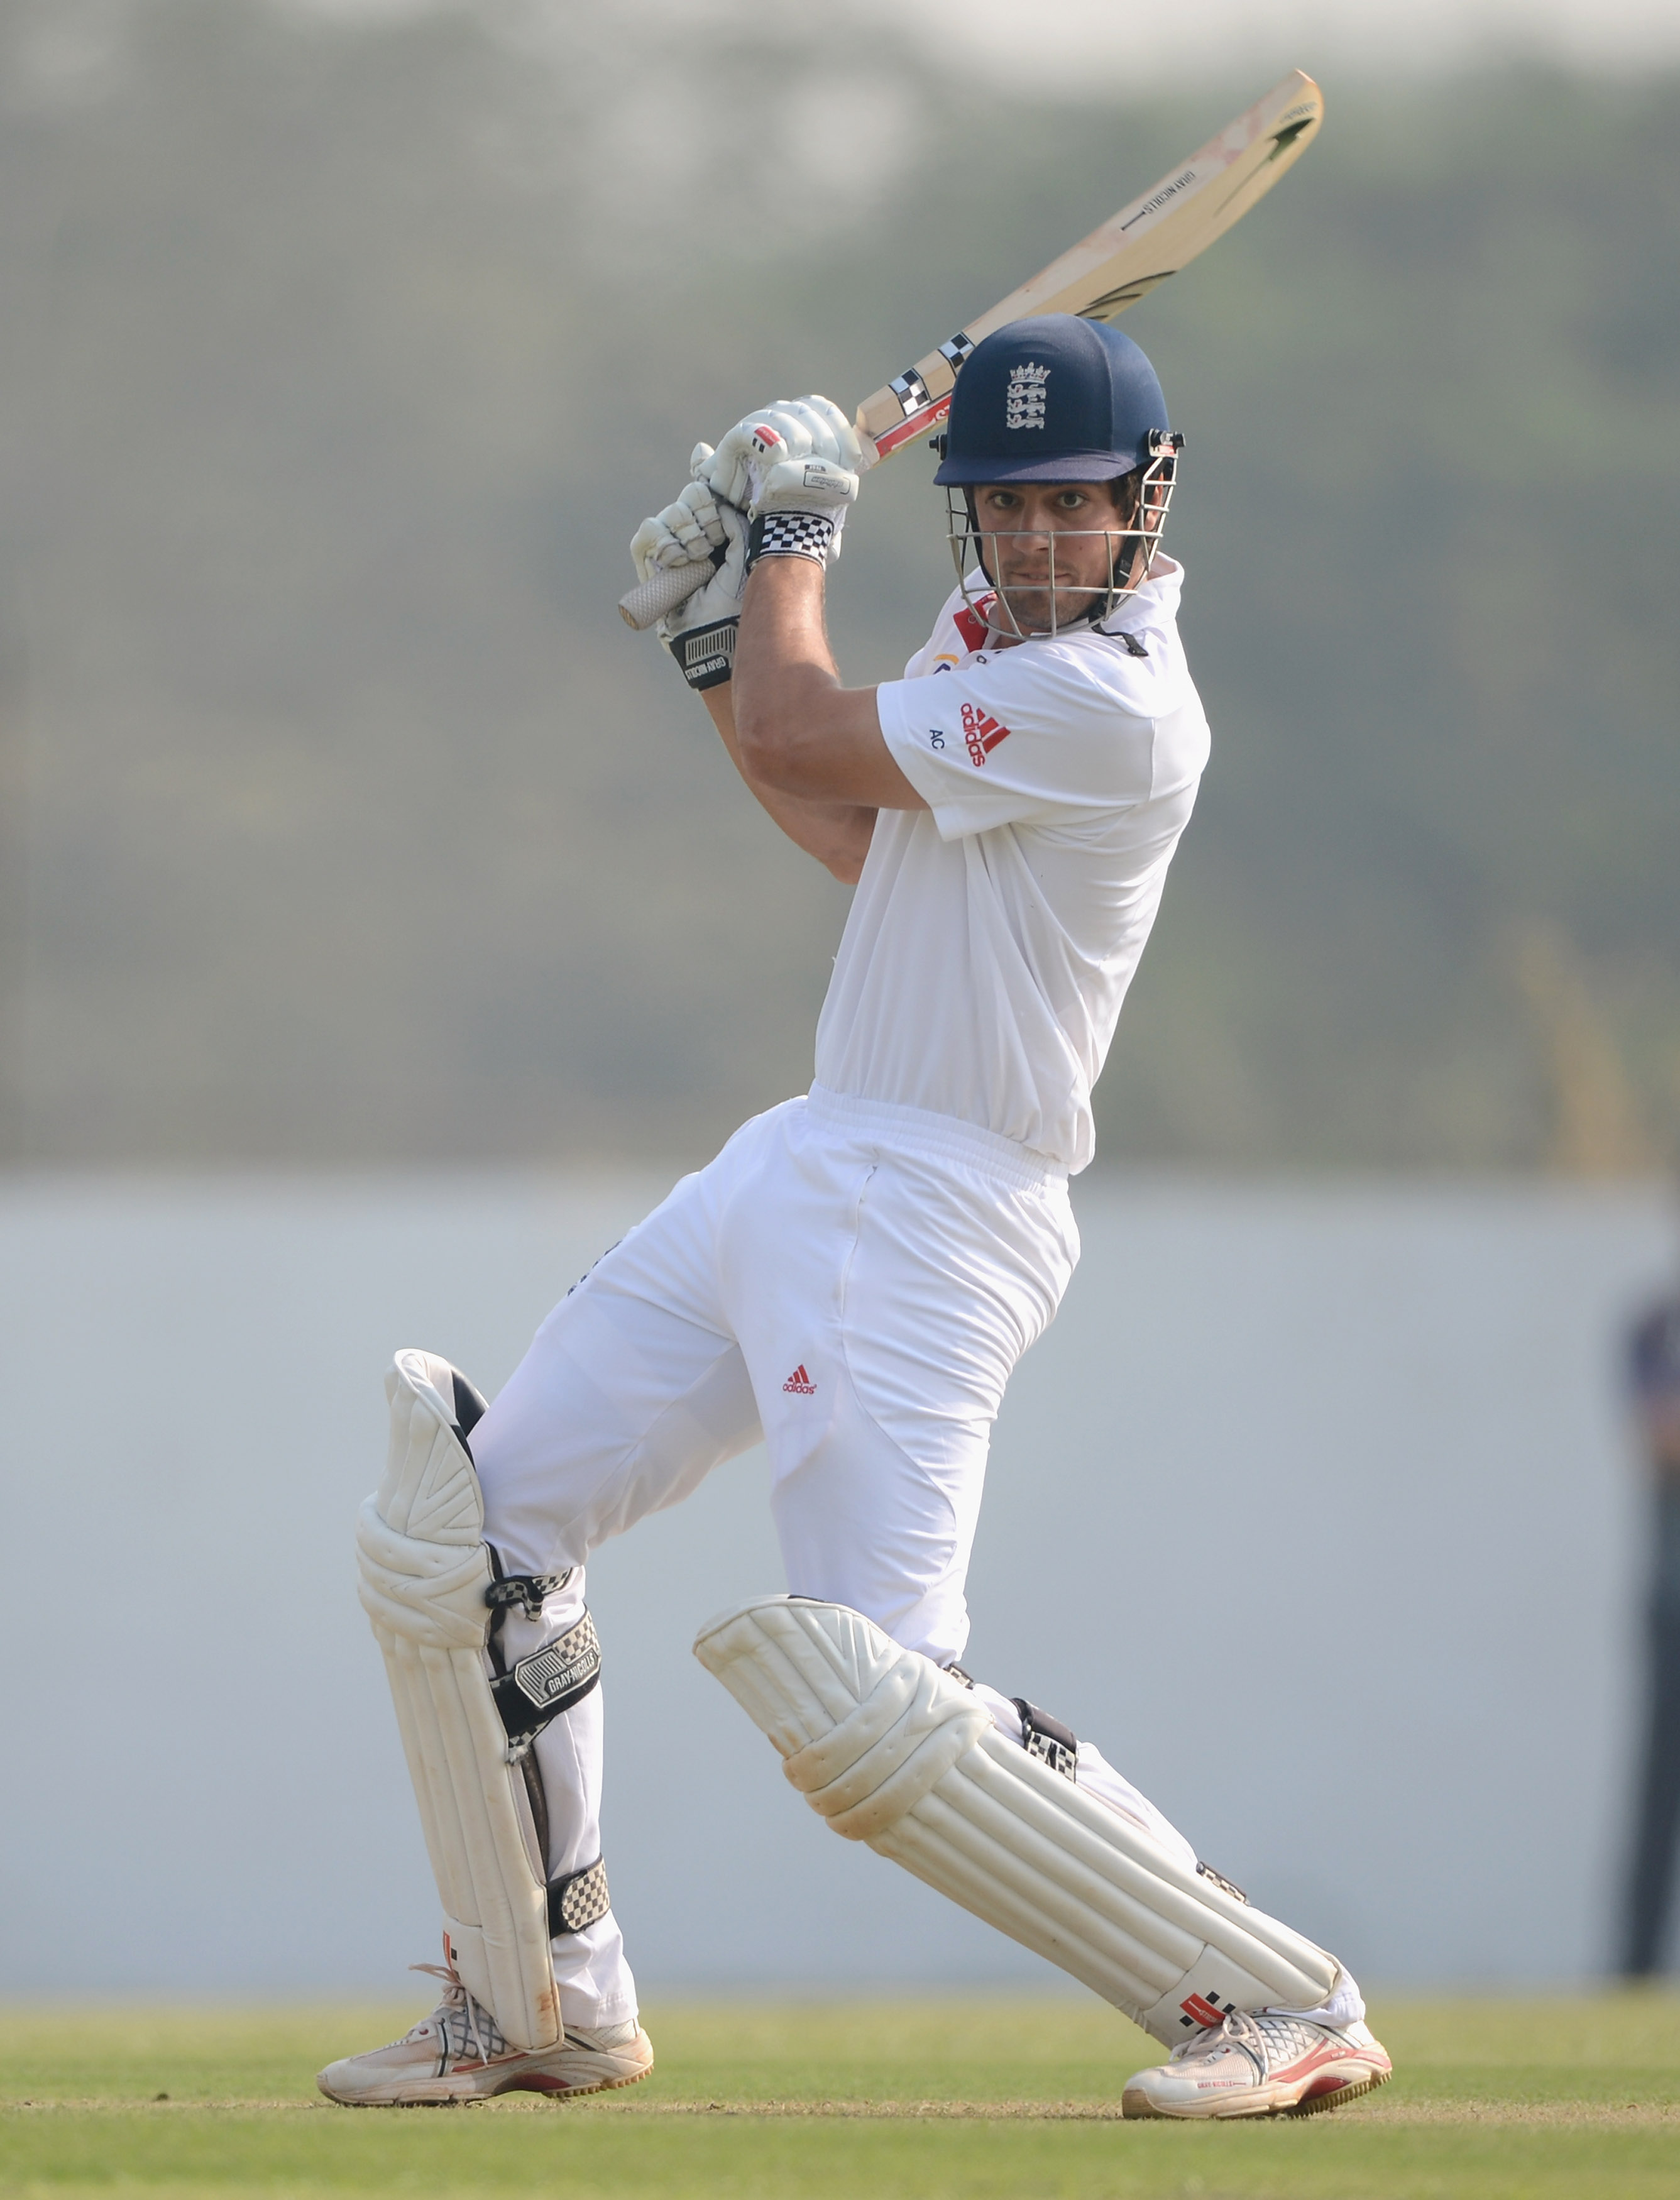 Alastair Cook: Ashley Giles appointment affected England's squad balance